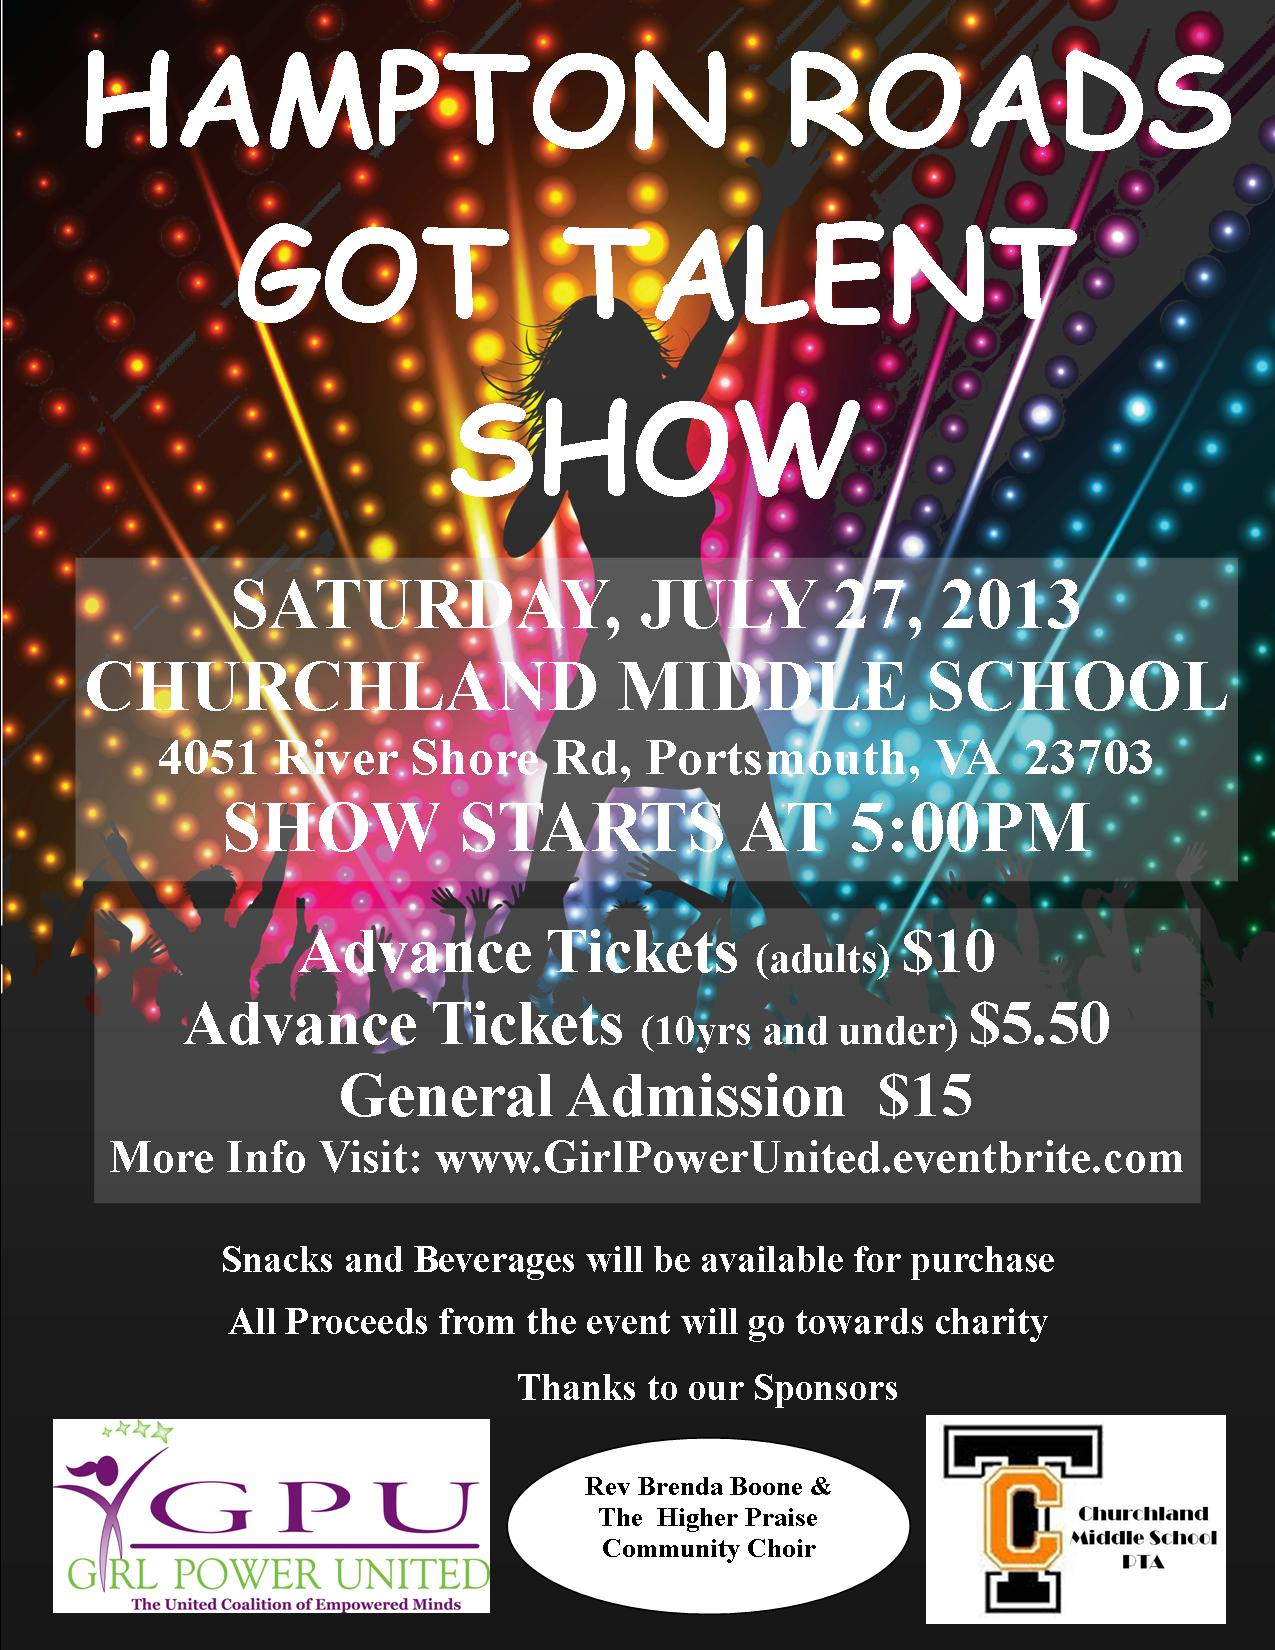 Talent Show Flyer | Virginia Nonprofit Girl Power United Inc To Host Hampton Roads